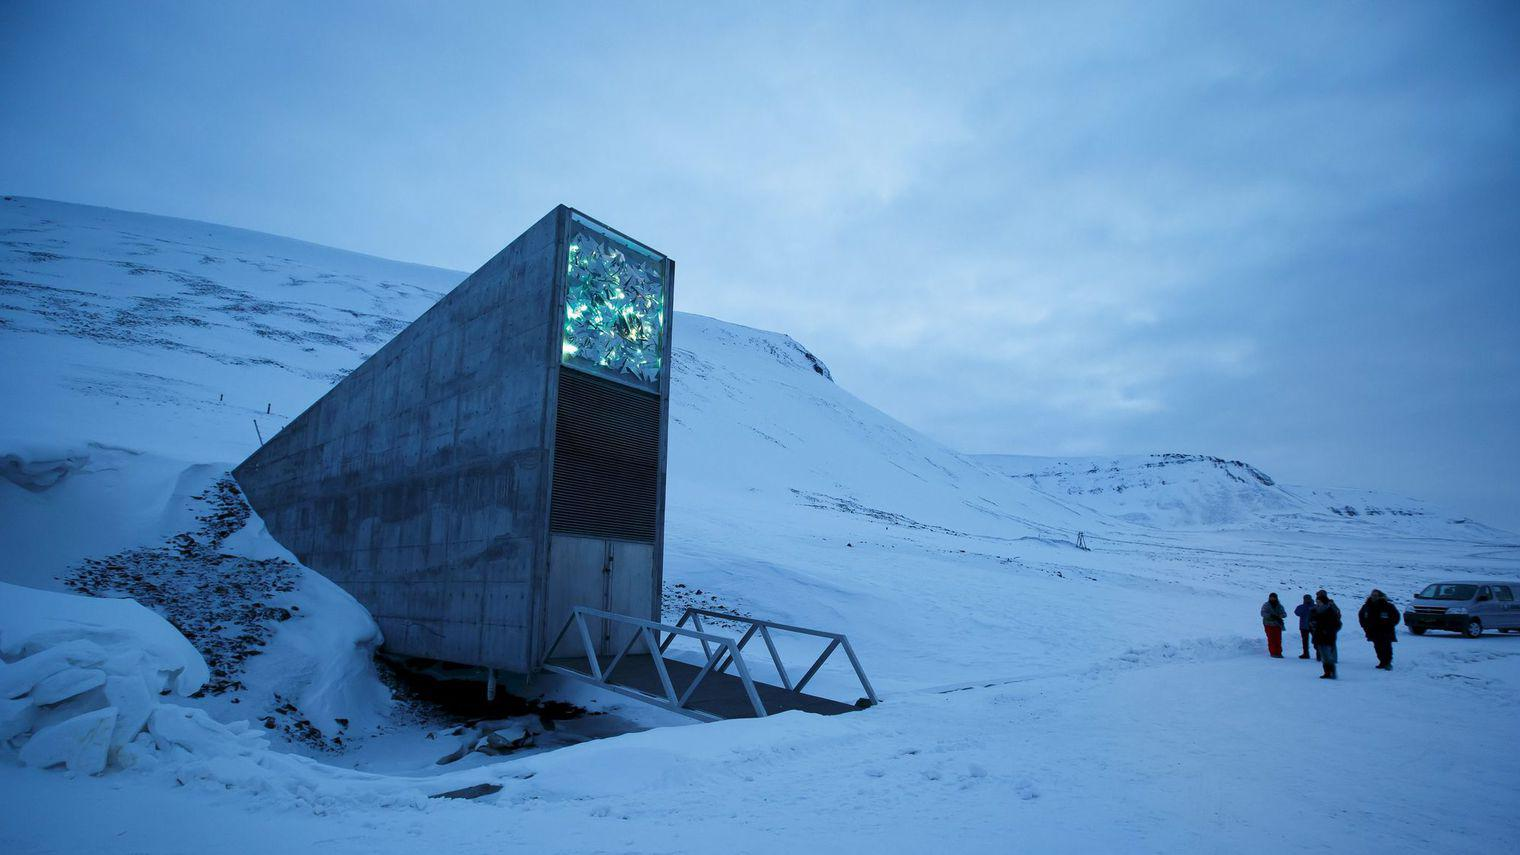 The entrance to the international gene bank svalbard global seed vault sgsv is pictured outside longyearbyen on spitsbergen norway 5857273